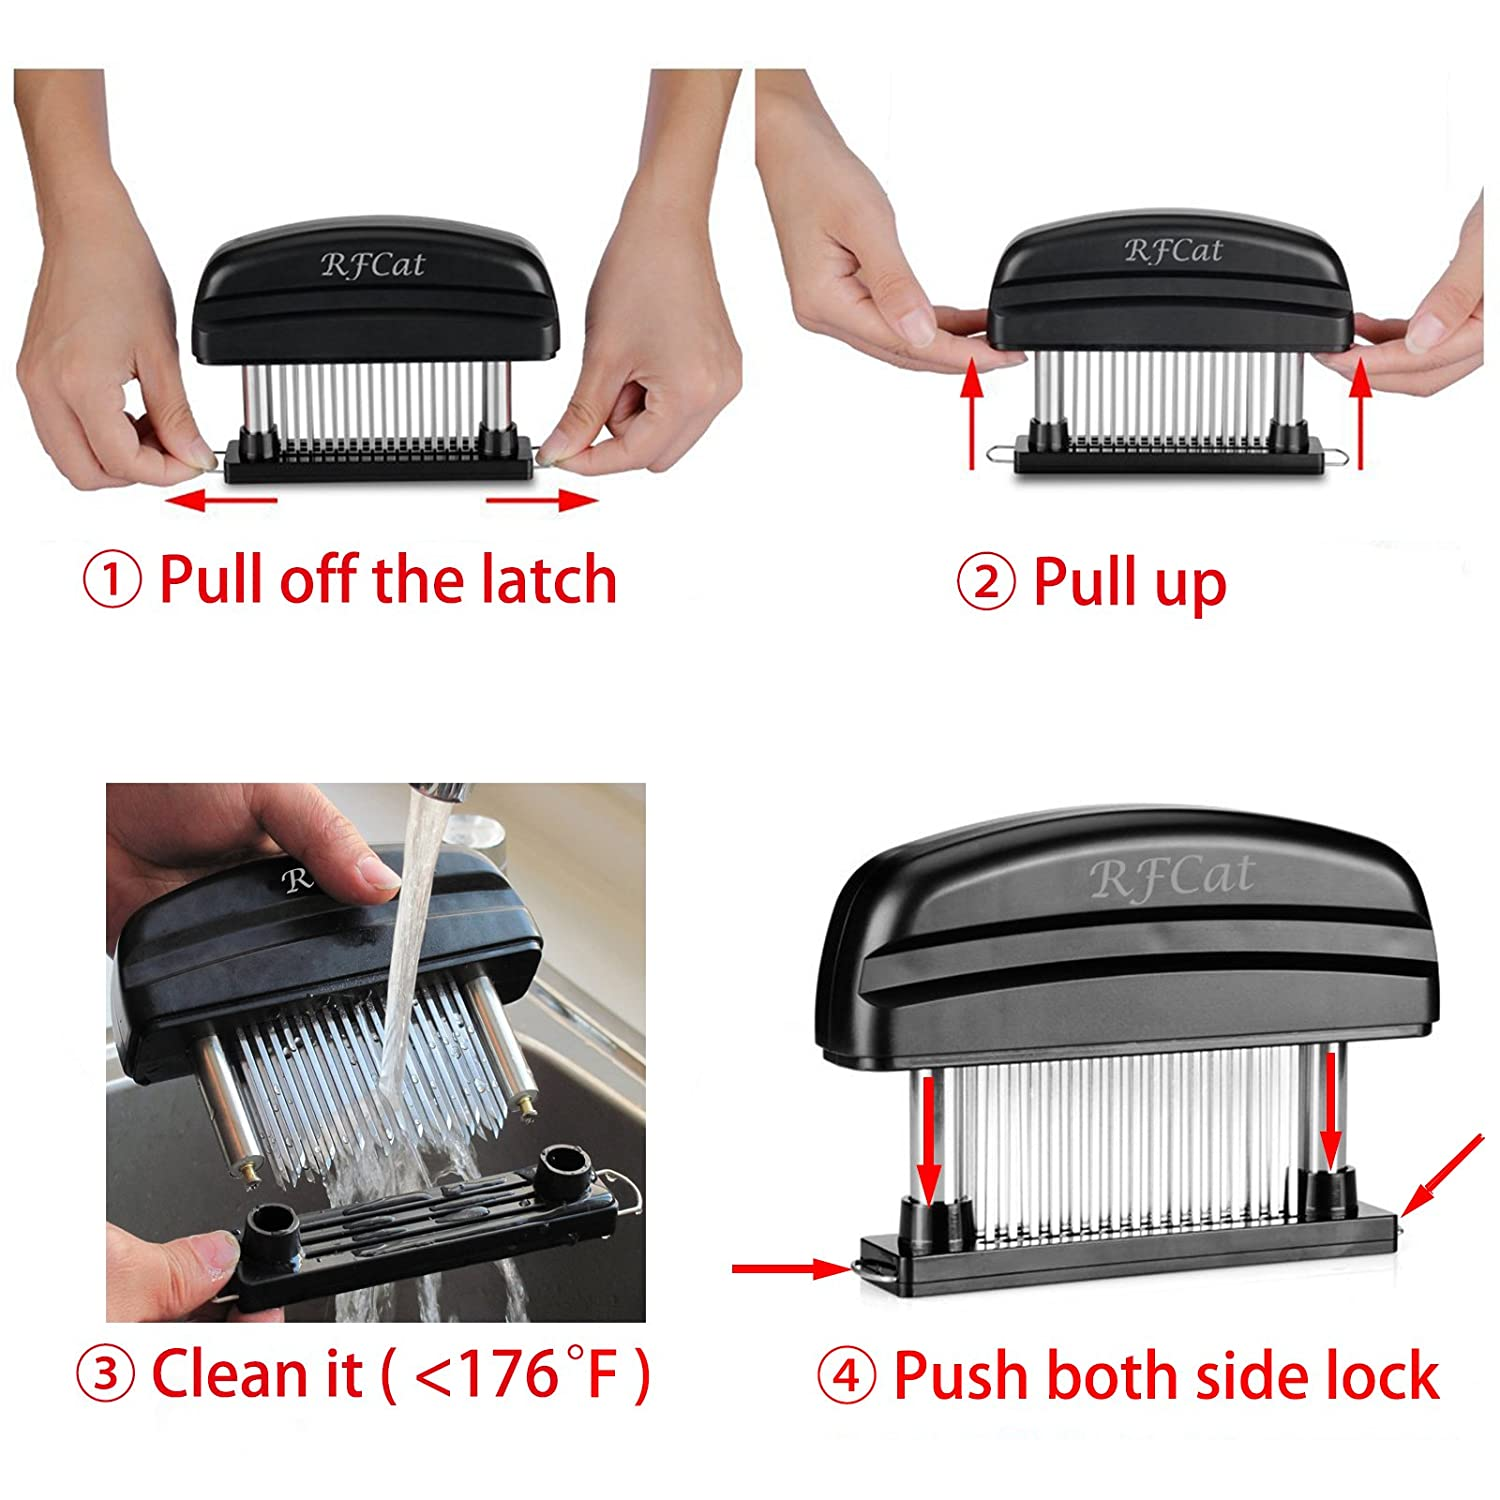 Needle Meat Tenderizer Tool with 48 Razor-Sharp Needle Stainless Steel Blades,Kitchen Tool for Steak,Beef,Chicken,Pork and Fish Black